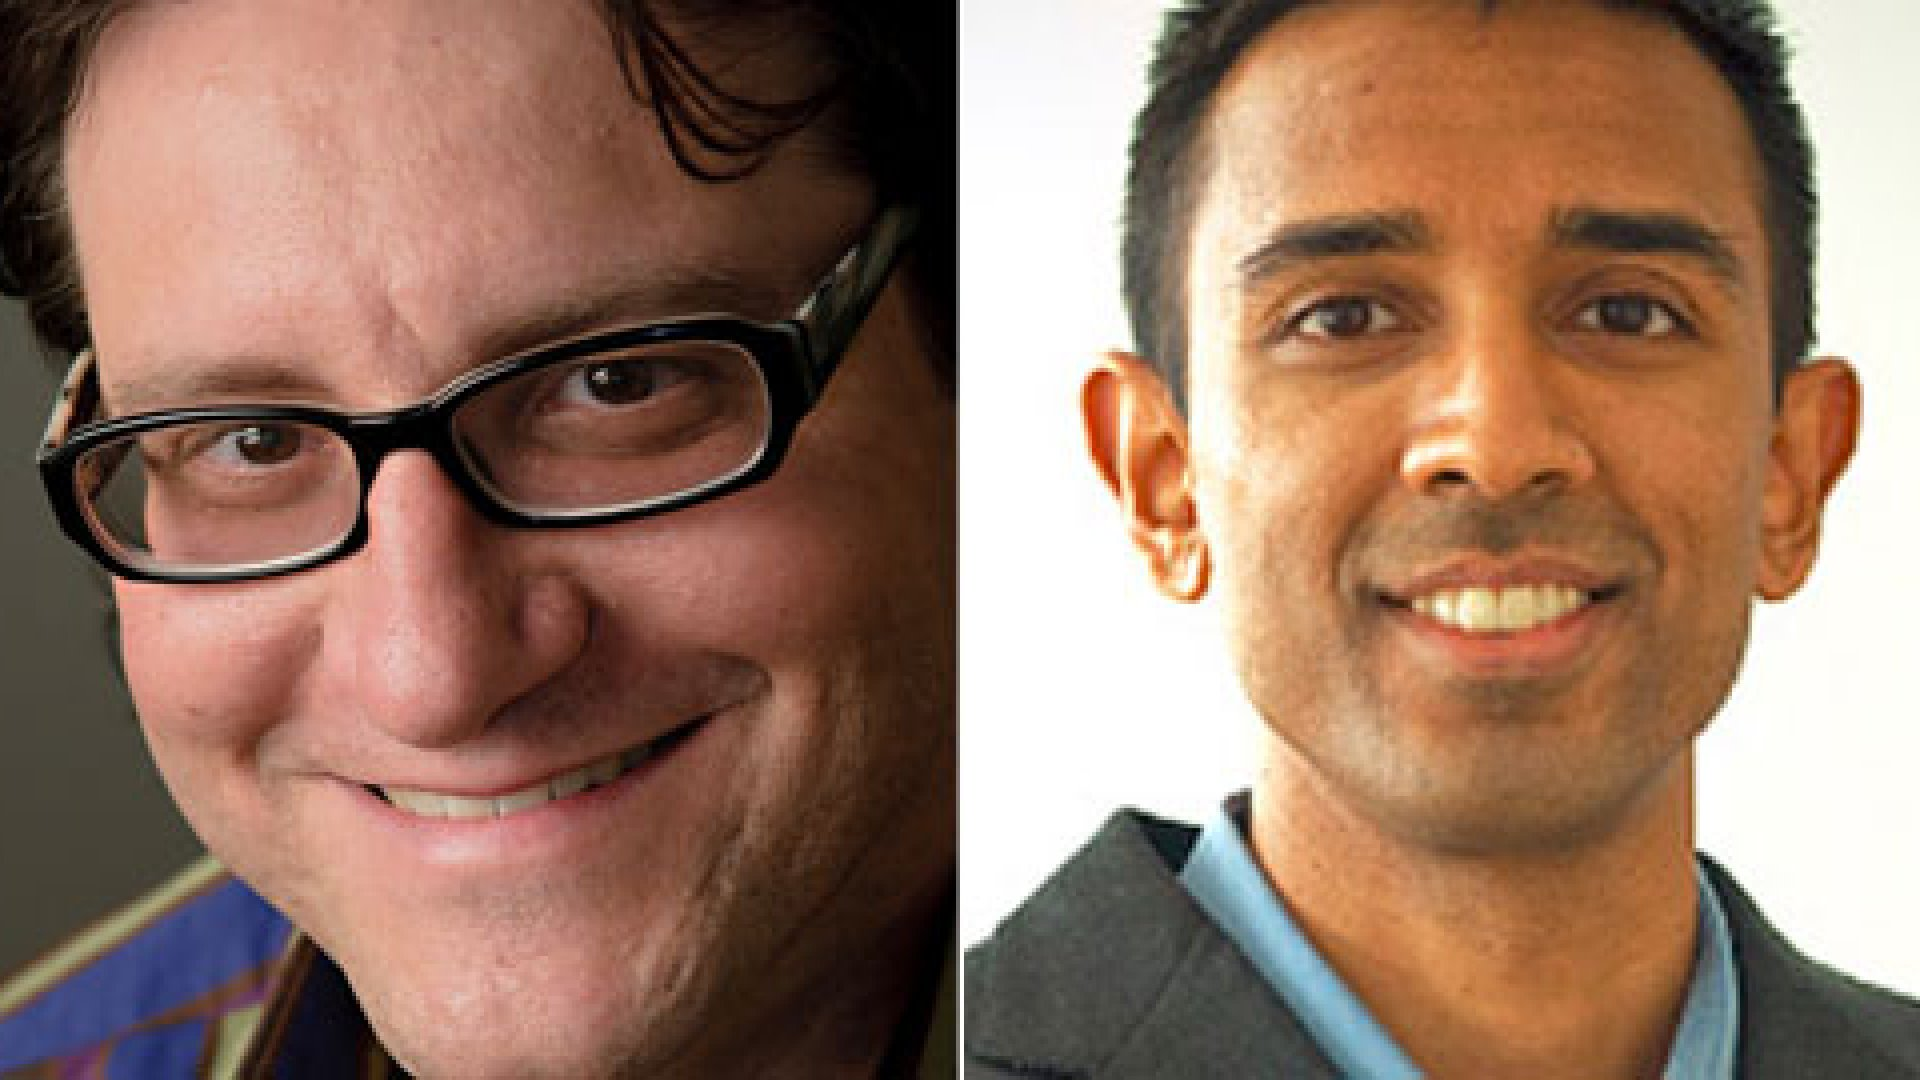 Investor Brad Feld and entrepreneur Rajat Bhargava have worked together on seven start-ups over the last 18 years.